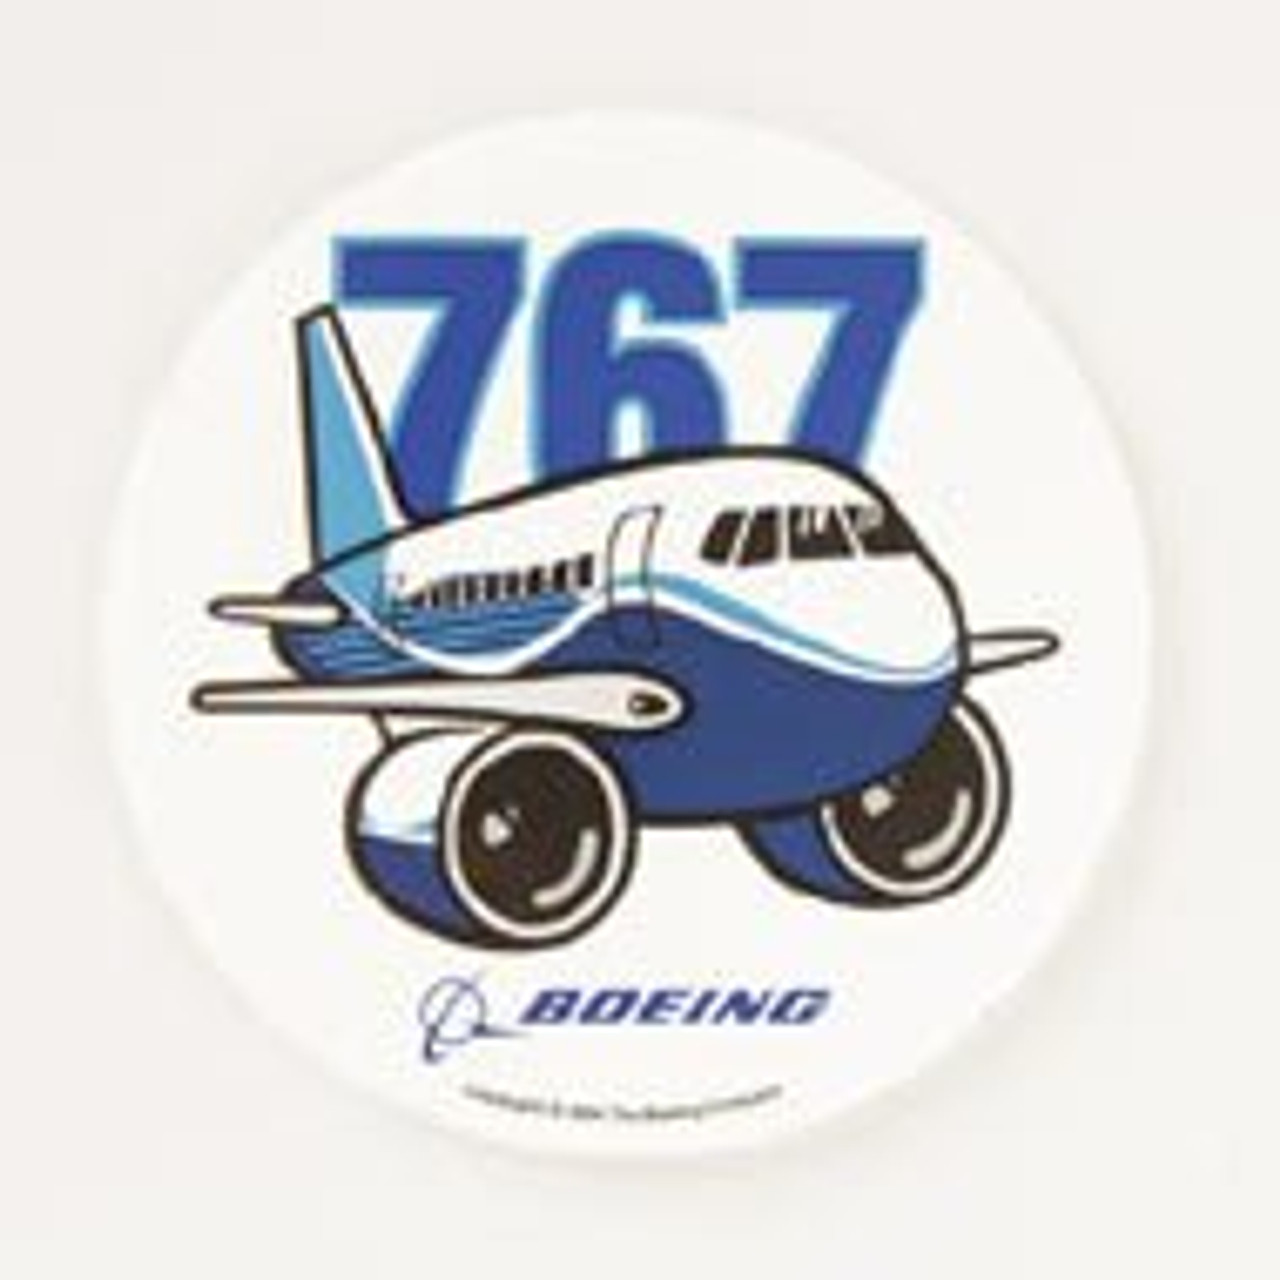 767 Pudgy Sticker